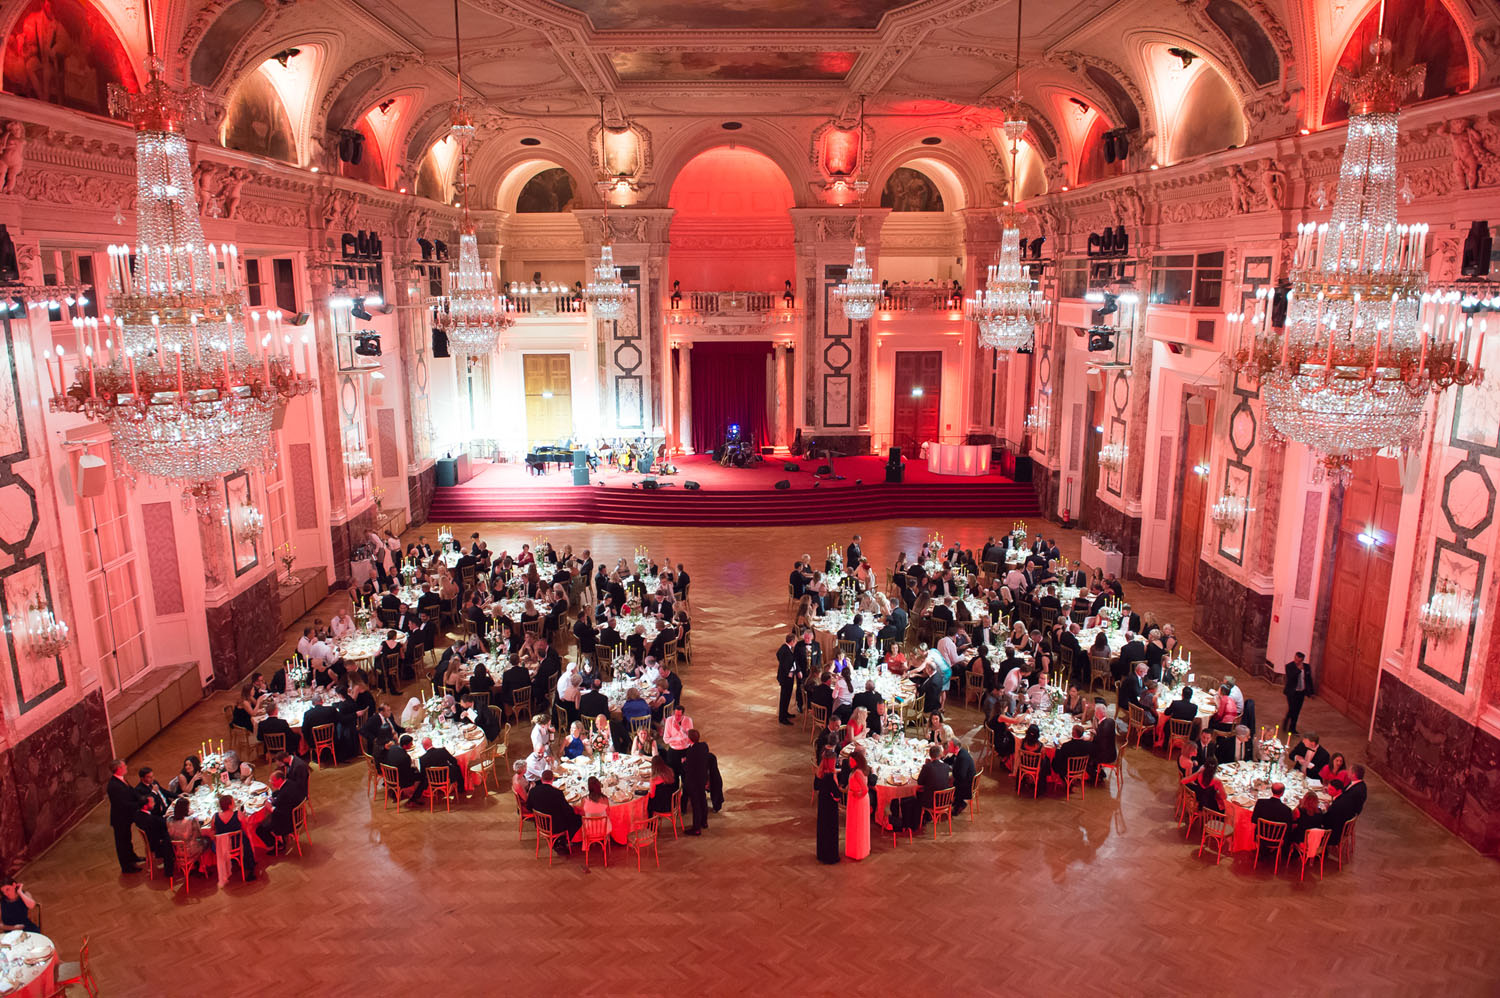 Fujitsu 165 20160911 - Gala Dinner At The Hofburg Palace Vienna